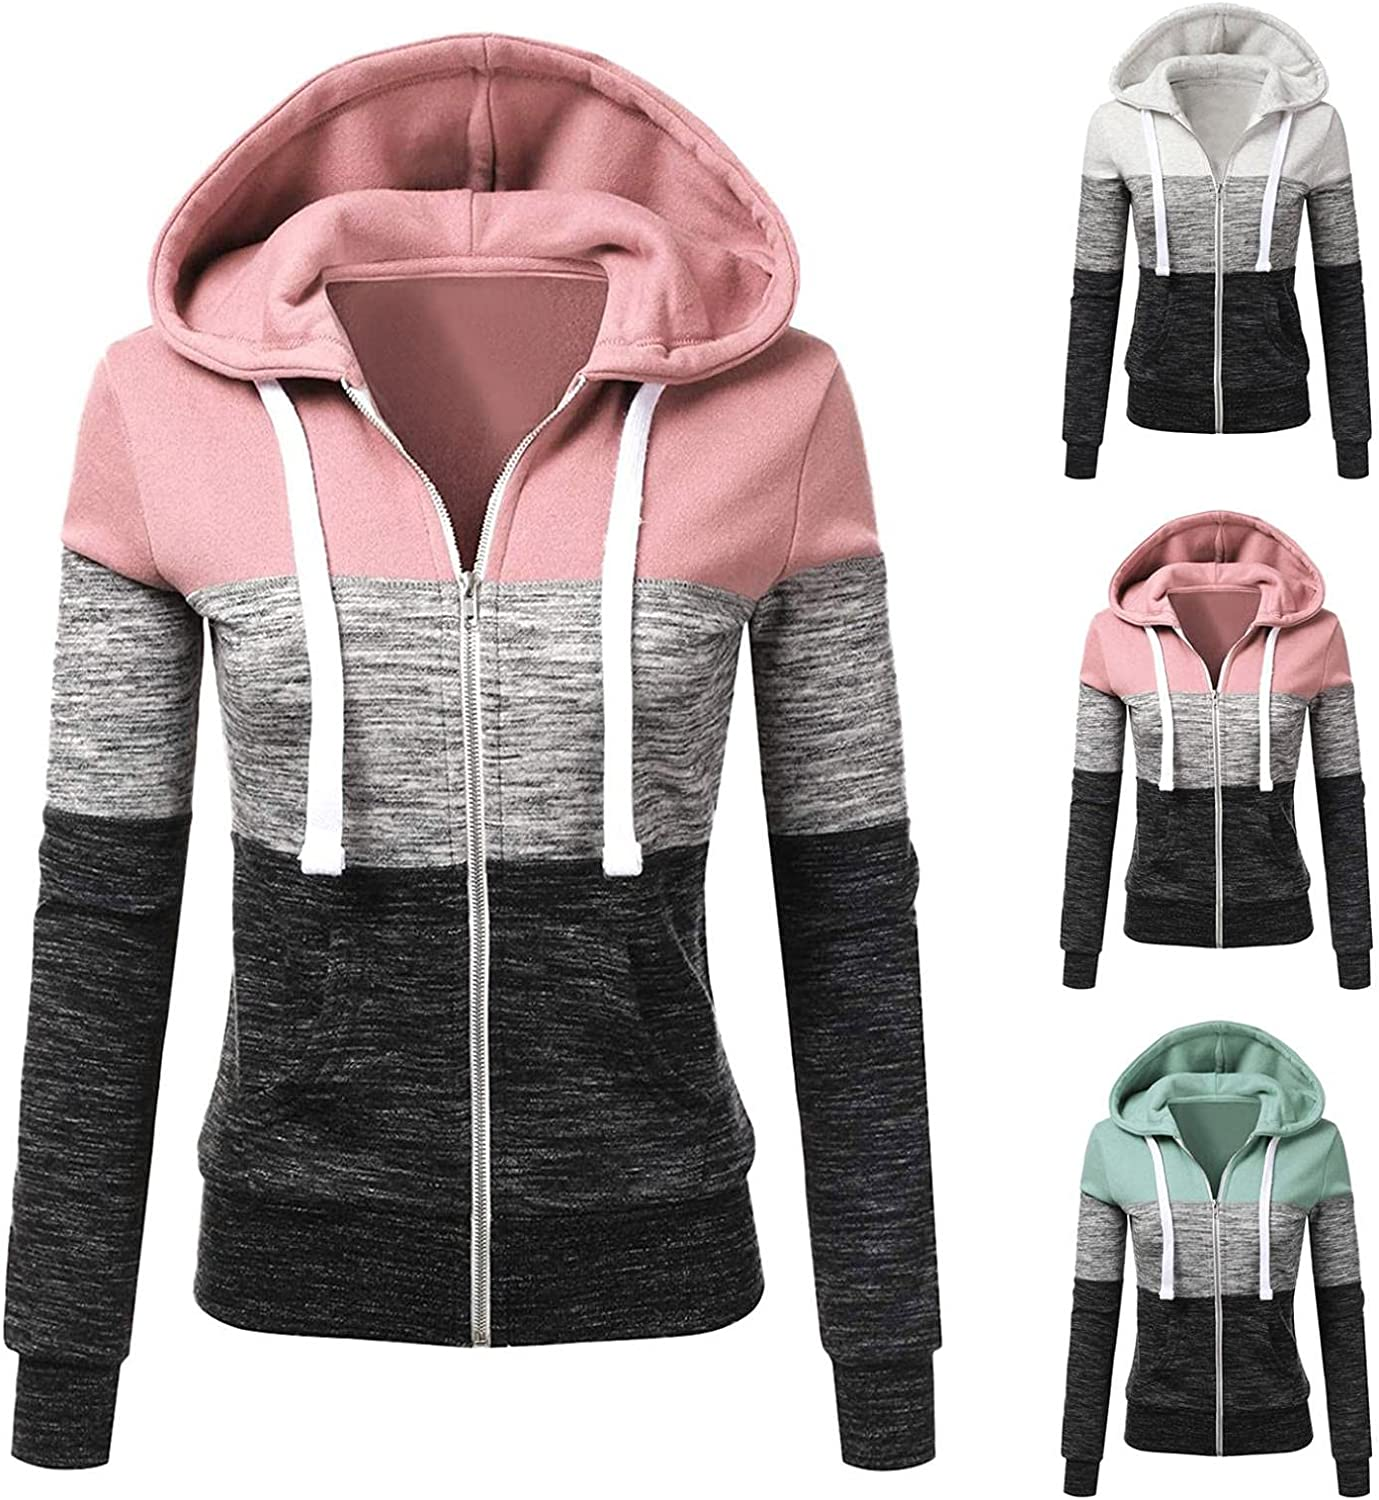 HCNTES Hoodies for Women Casual Zip Up Long Sleeve Top Trendy Winter Stripe Blouse Loose Fit Pullover Sweatshirts